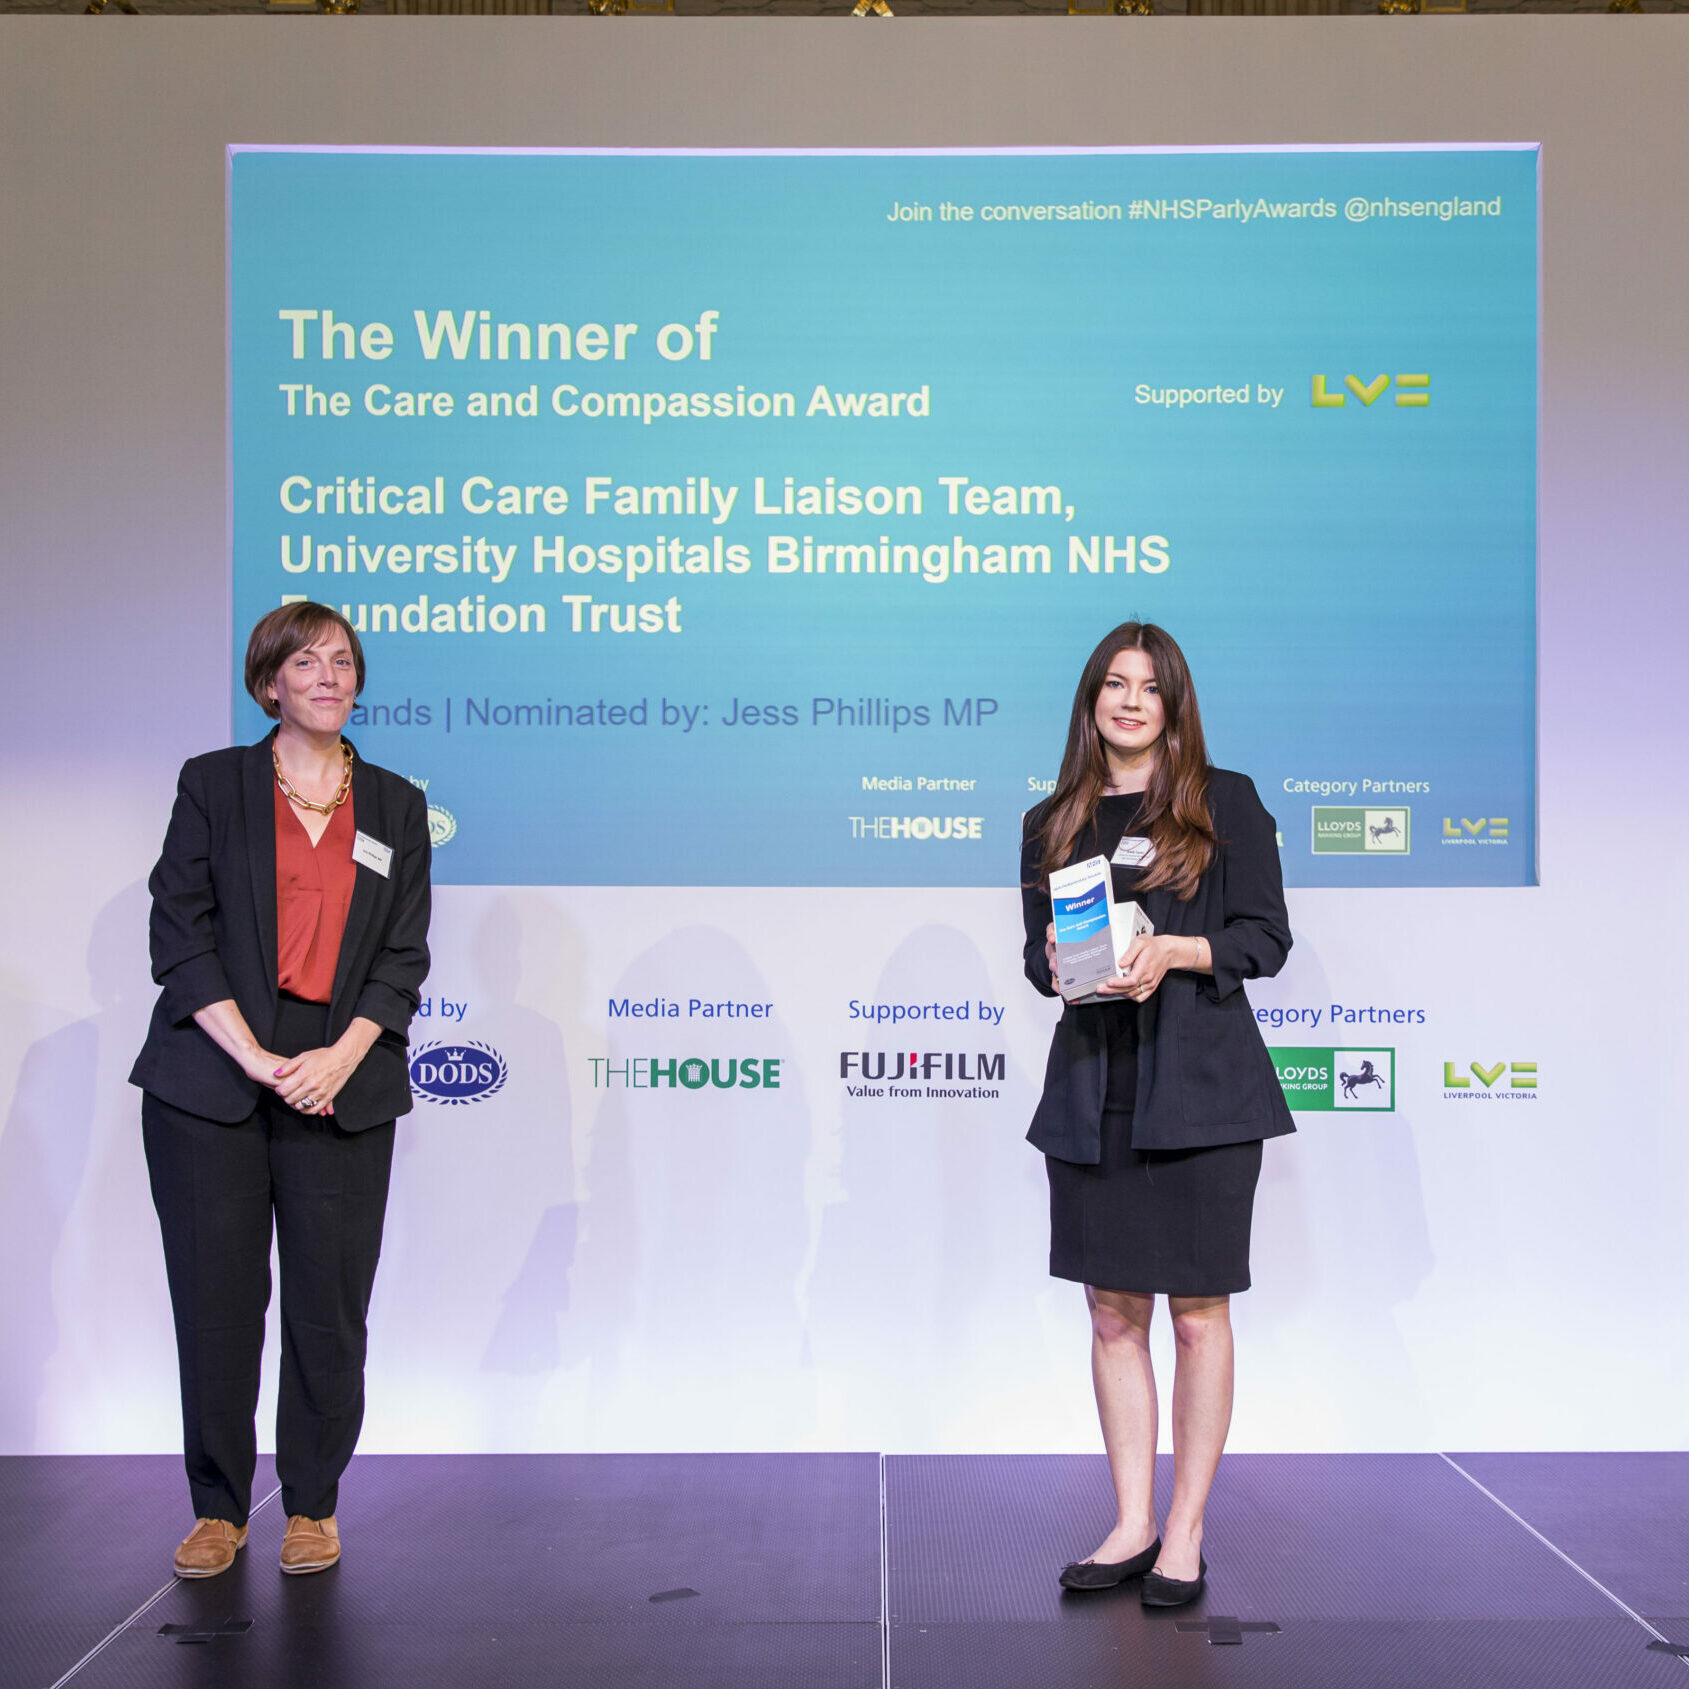 Two people are stood on a stage with a member of the Critical Care Liaison Team receiving their award